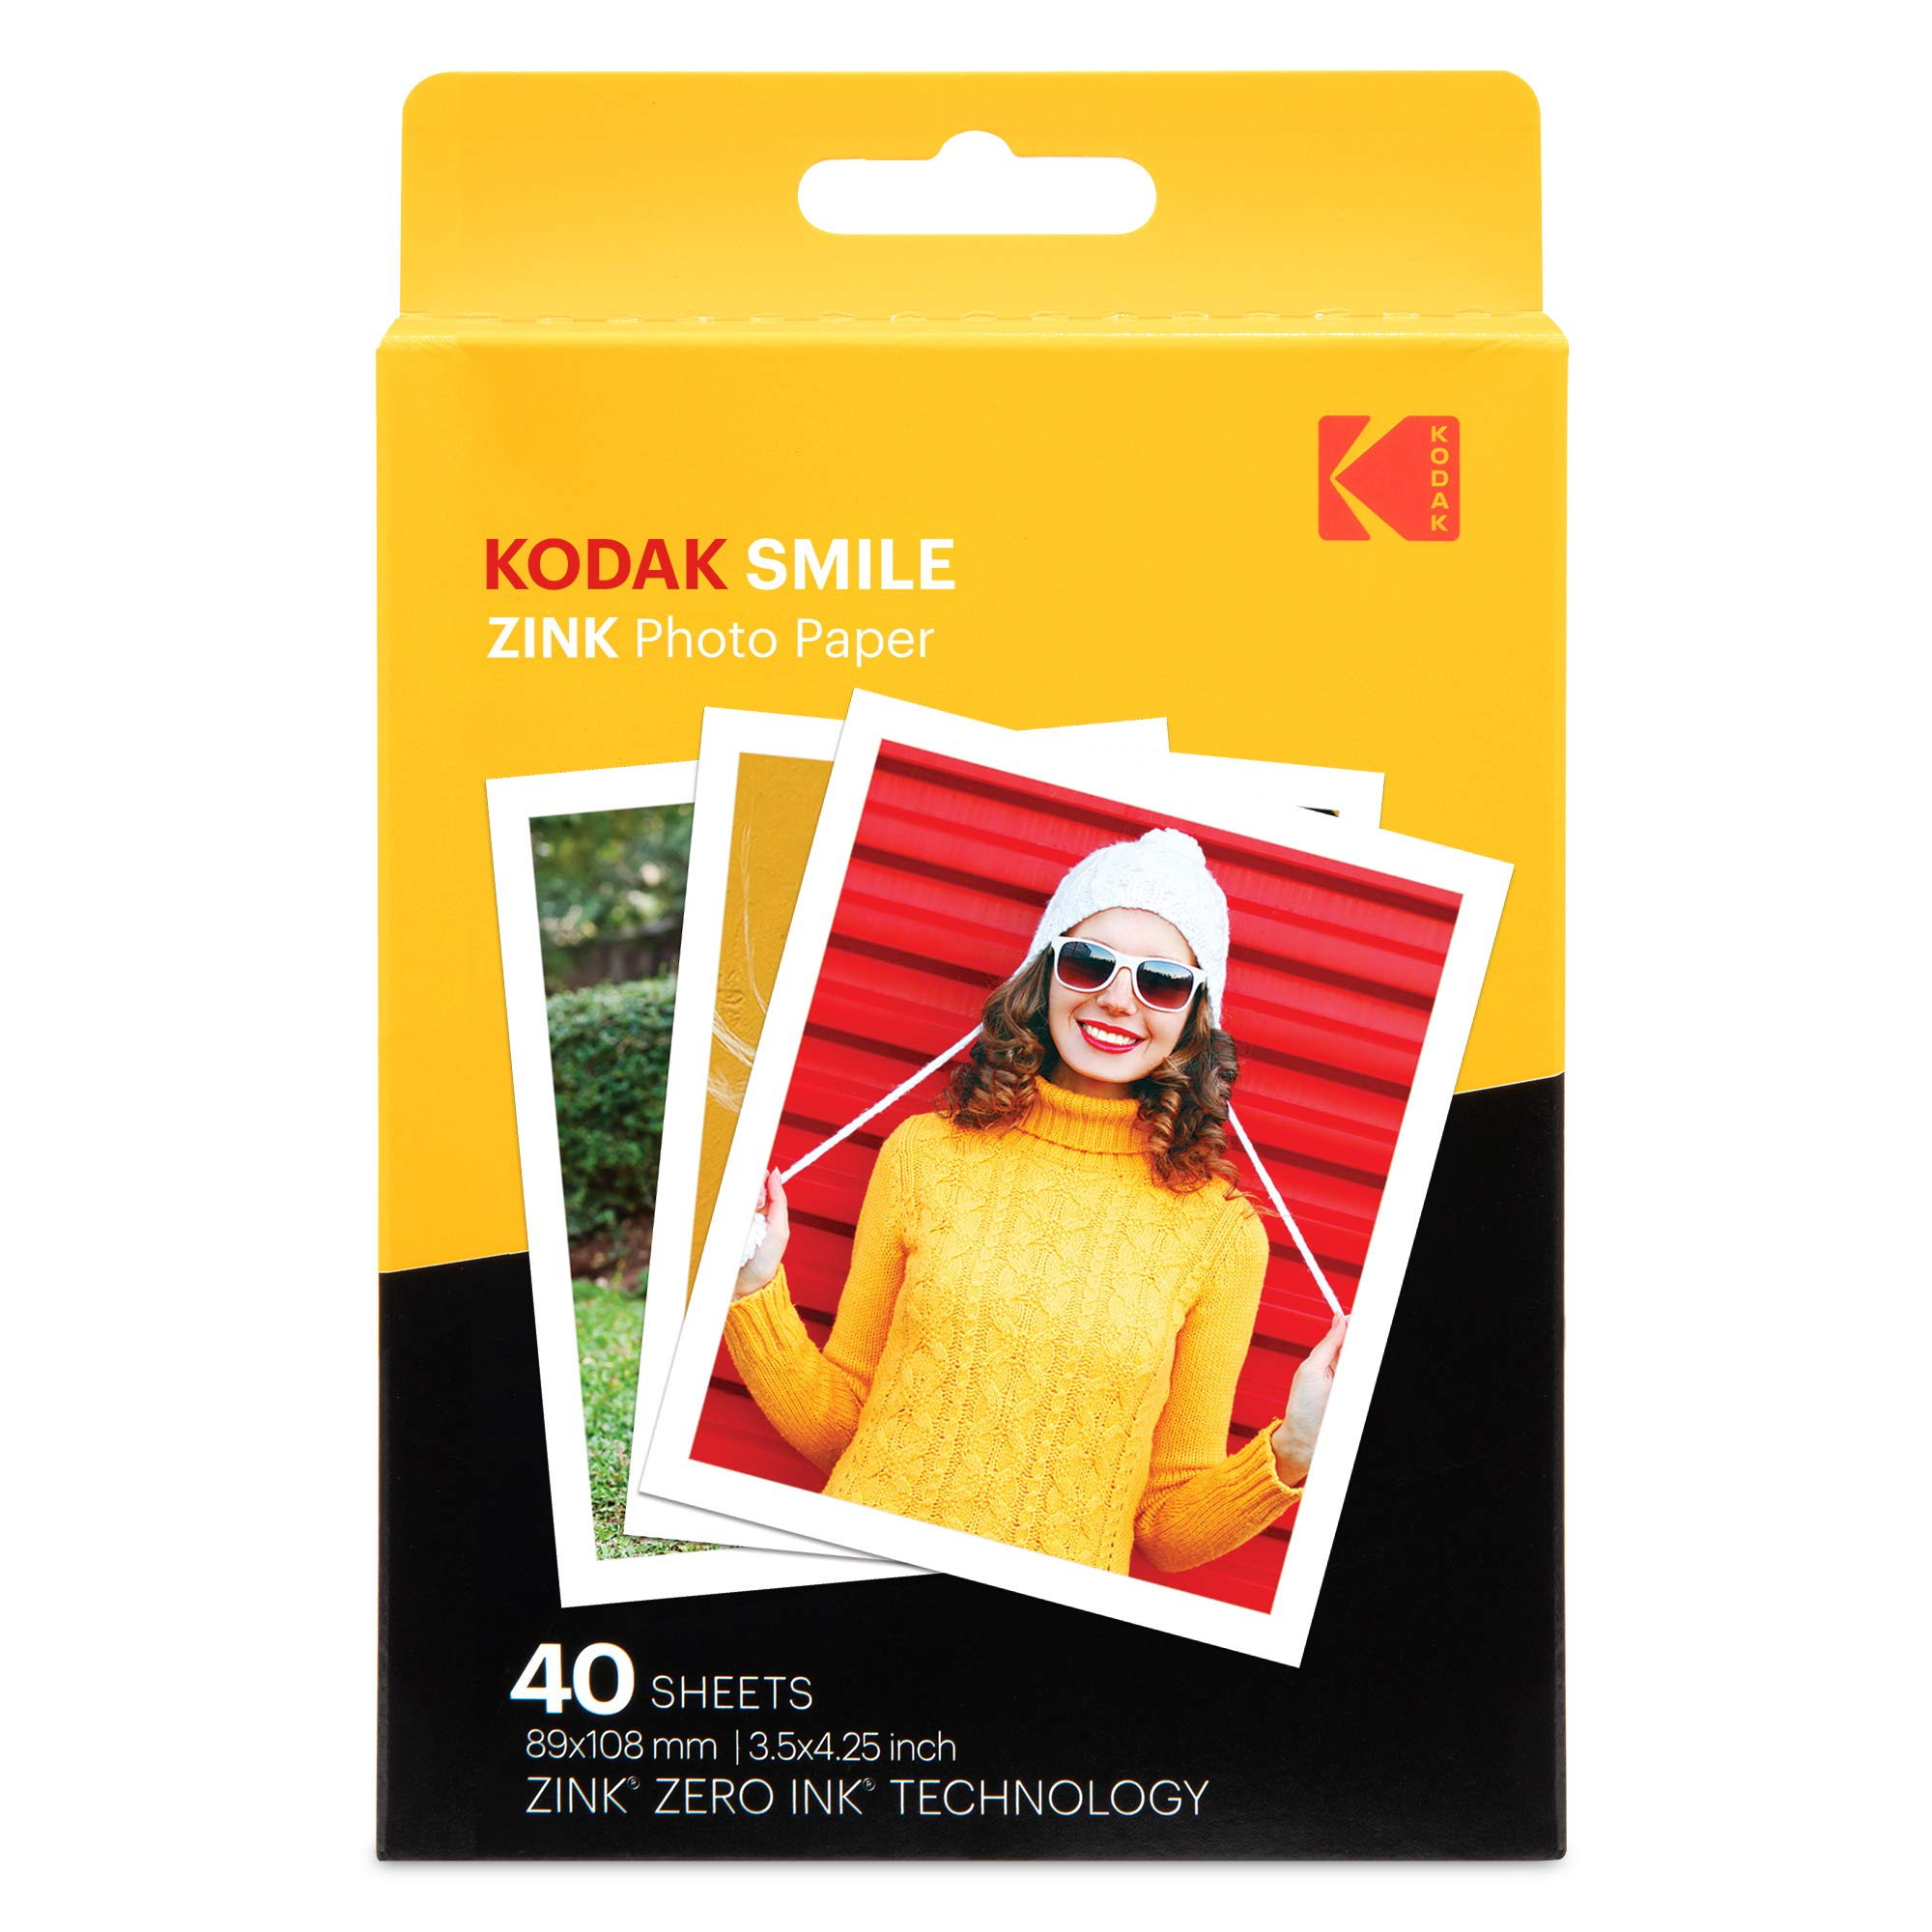 Kodak 3.5x4.25 inch Premium Zink Print Photo Paper (40 Sheets) Compatible with Kodak Smile Classic Instant Camera by KODAK